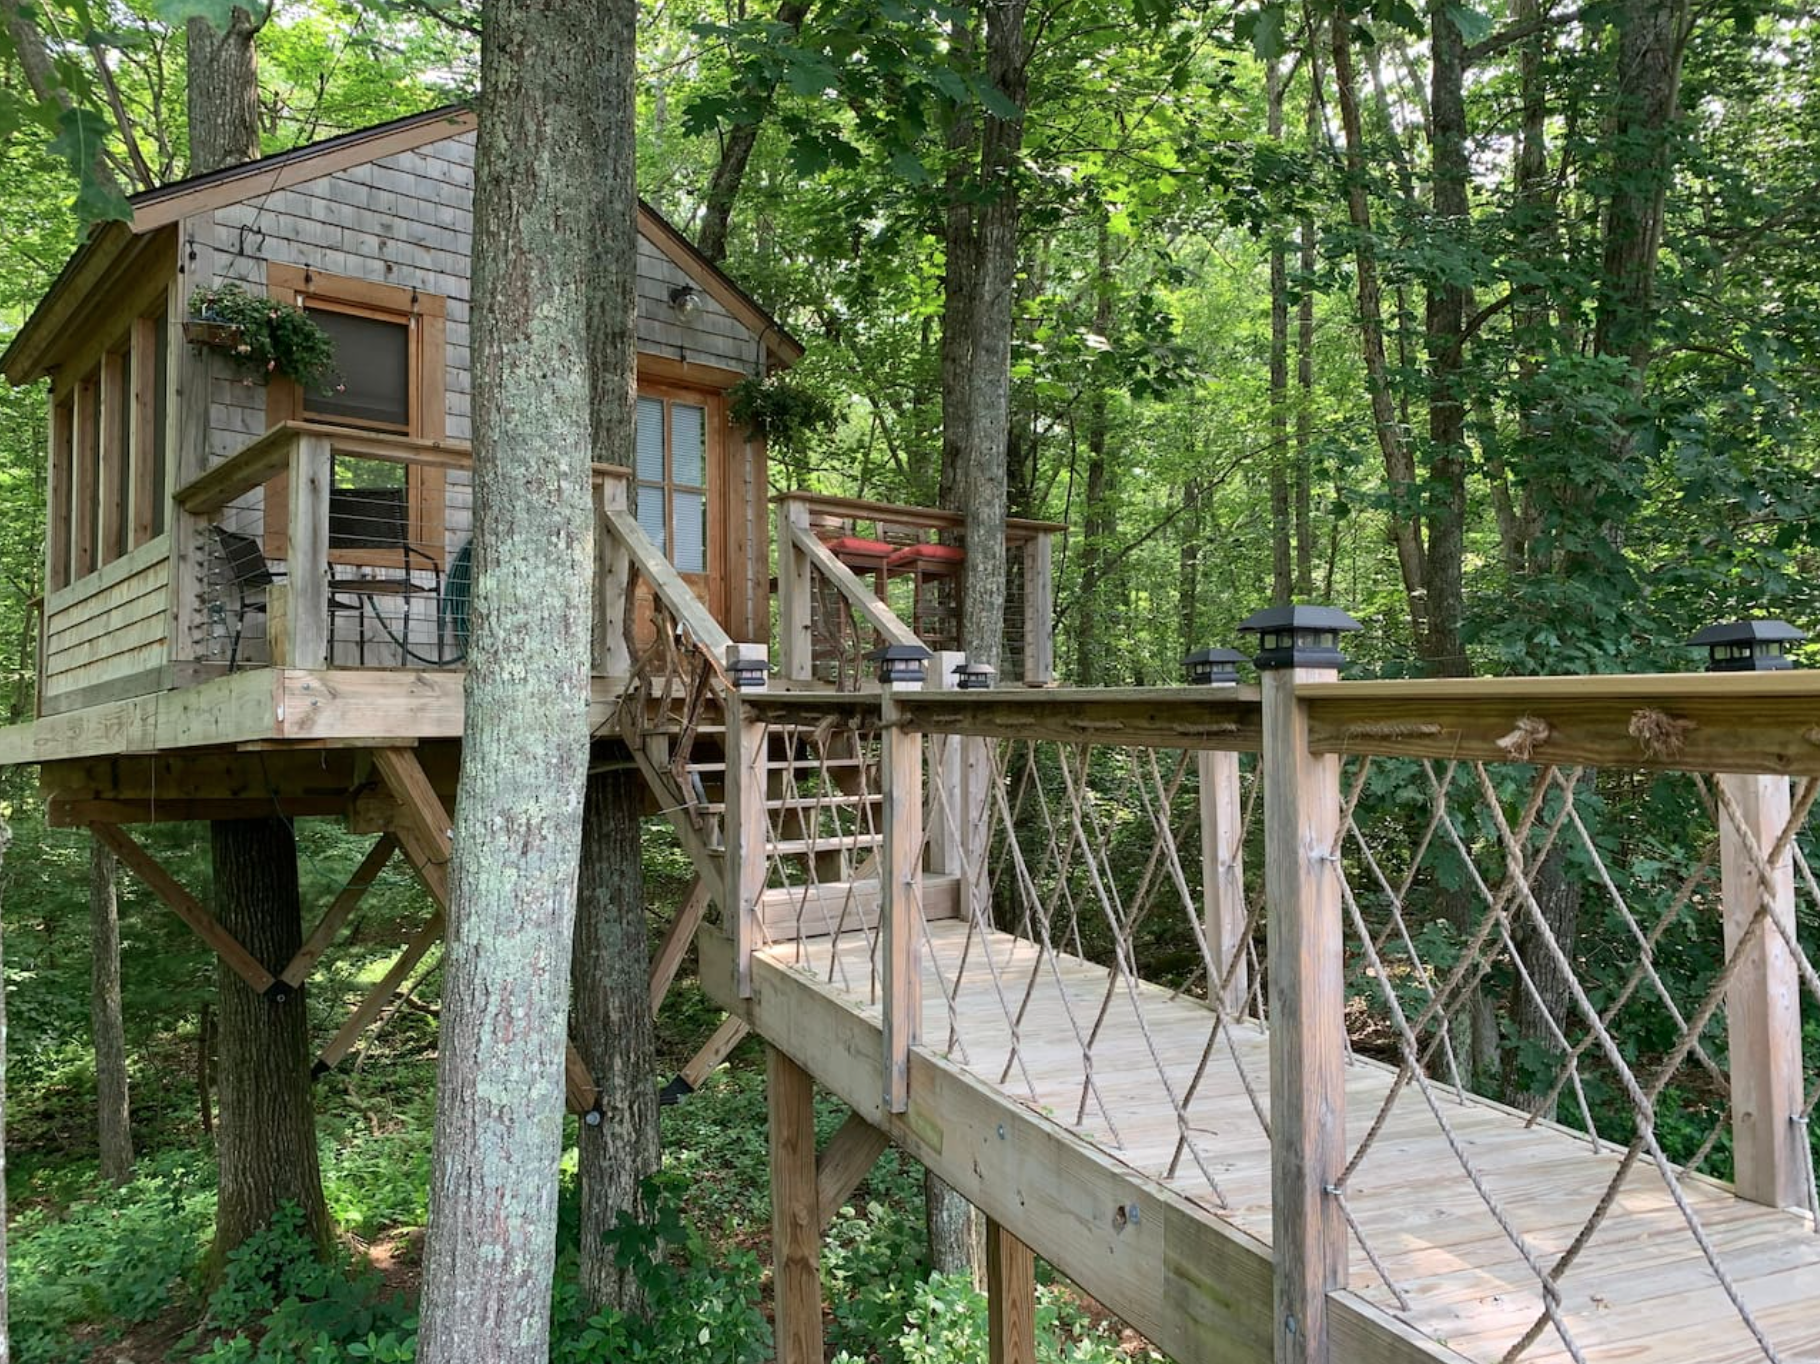 There's A Treehouse Airbnb In Rhode Island And It's The Ideal Little Hideout